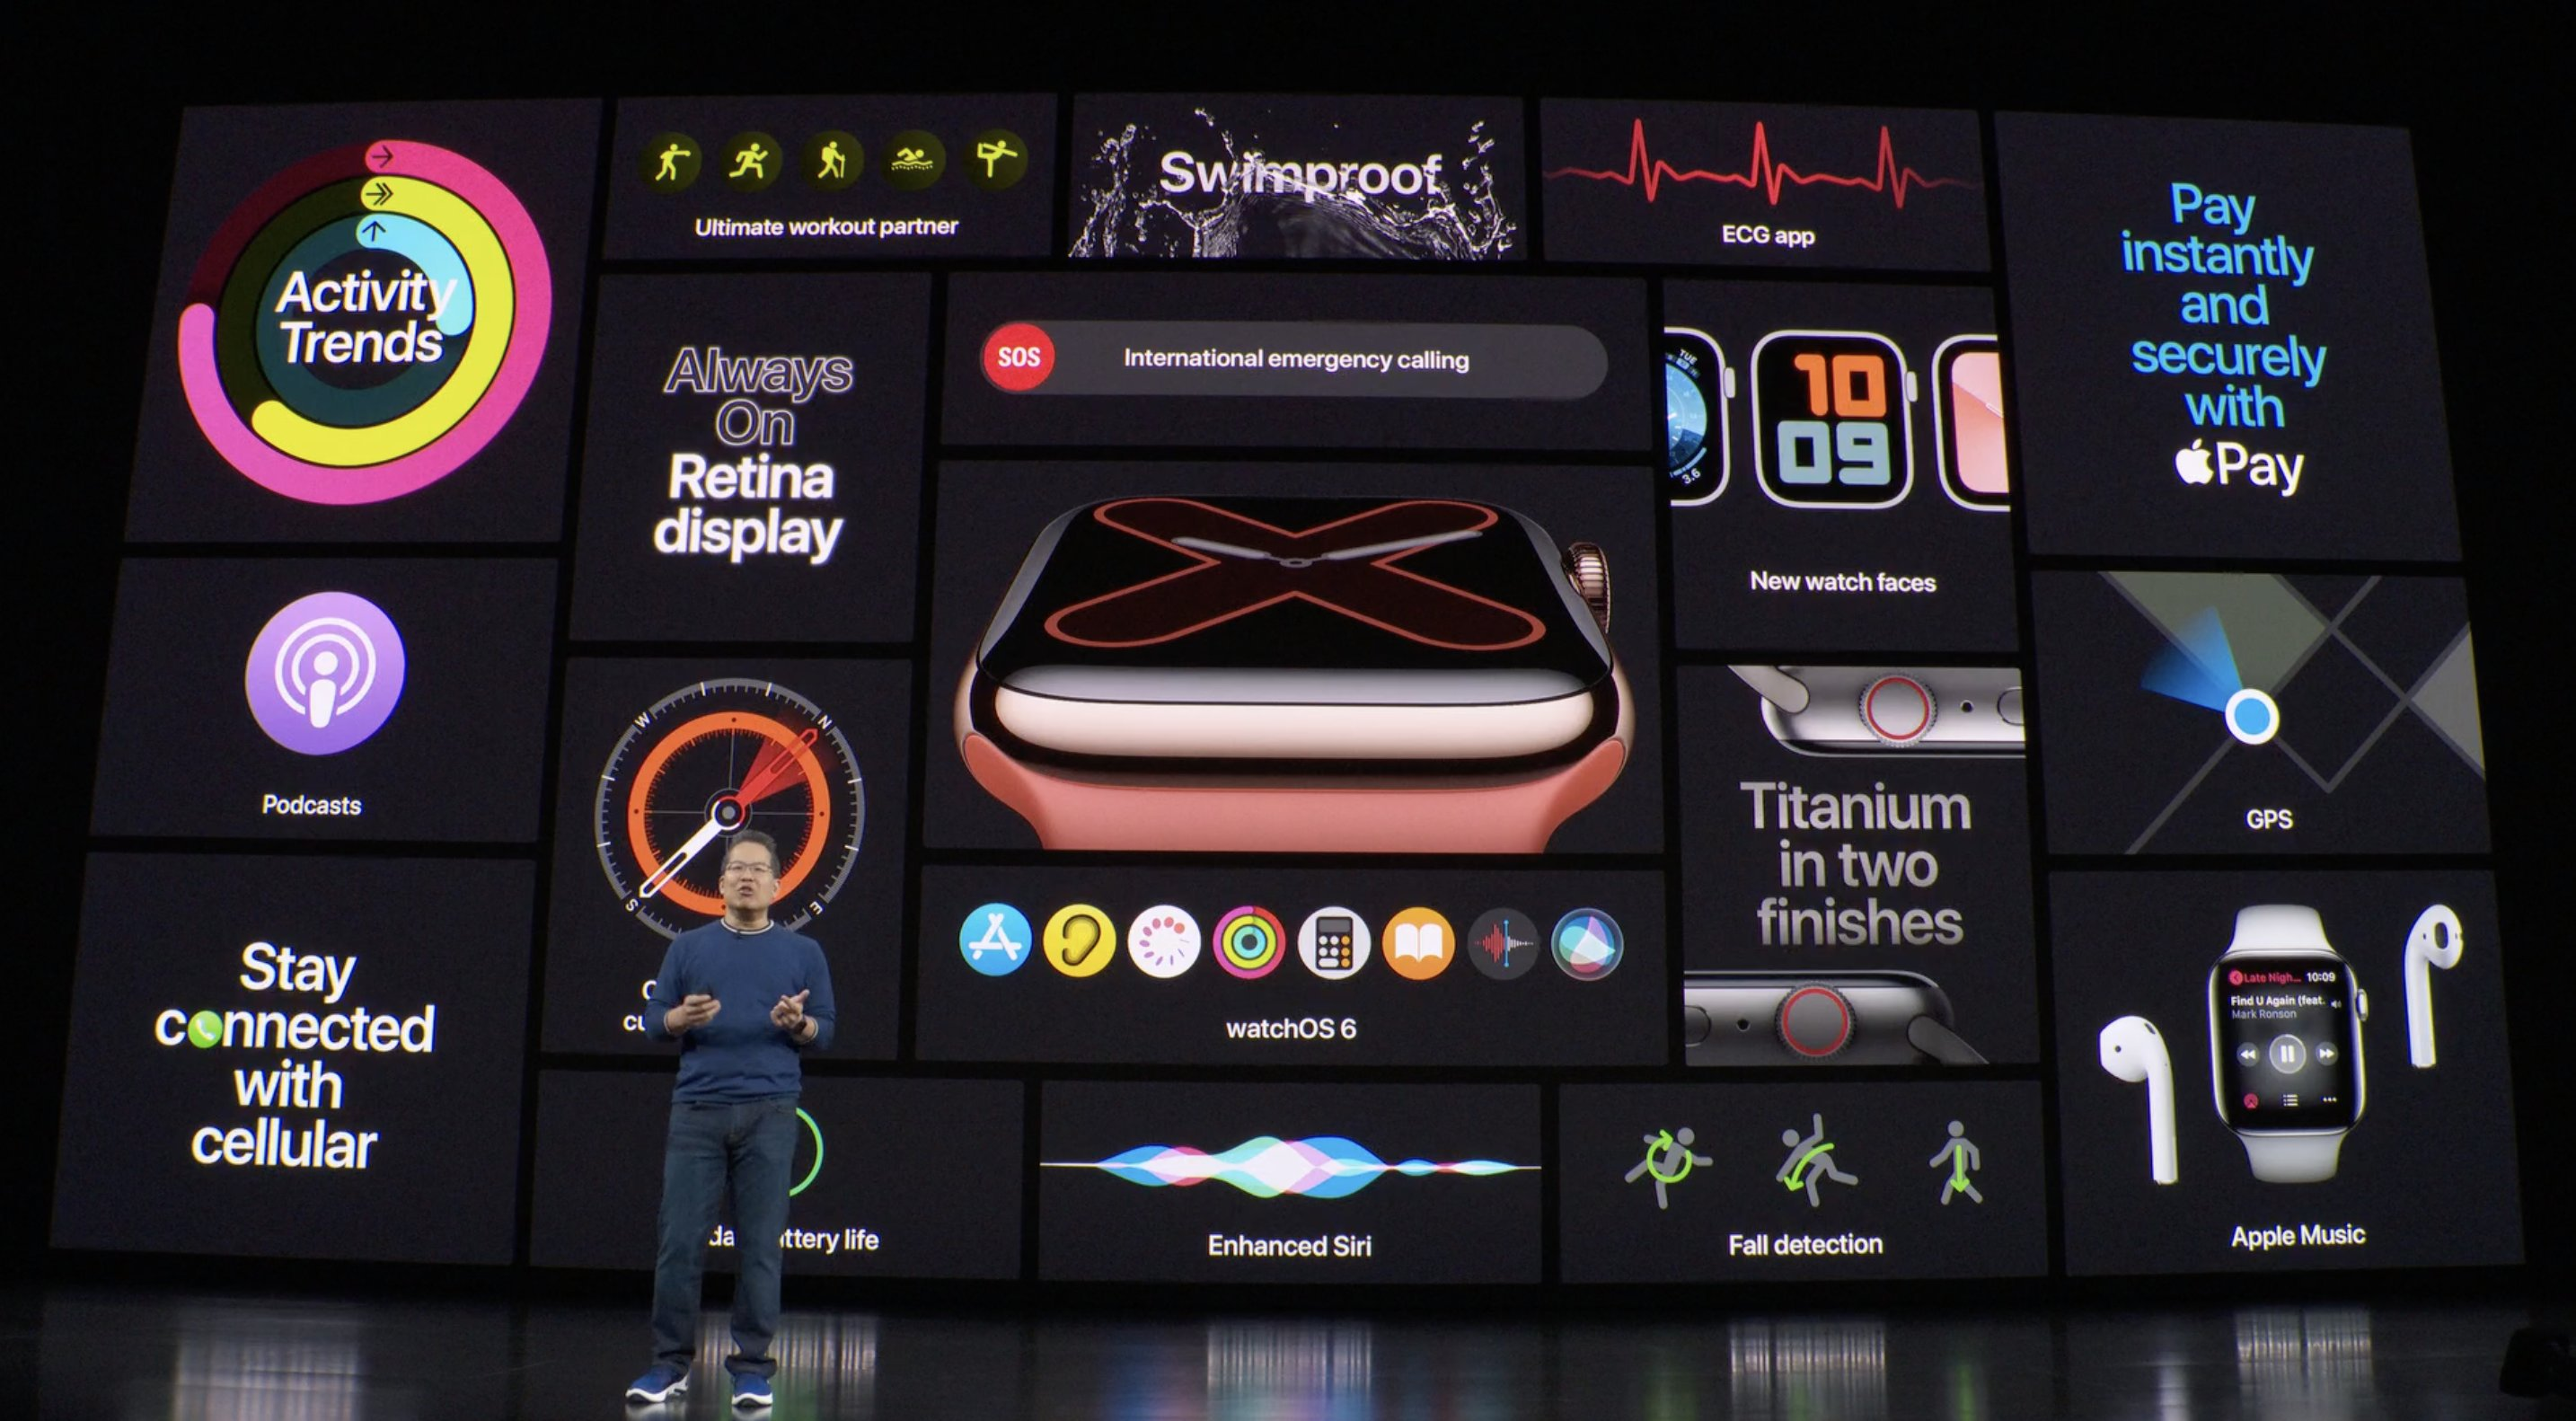 Resumen de principales novedades del Apple Watch series 5 (Keynote)